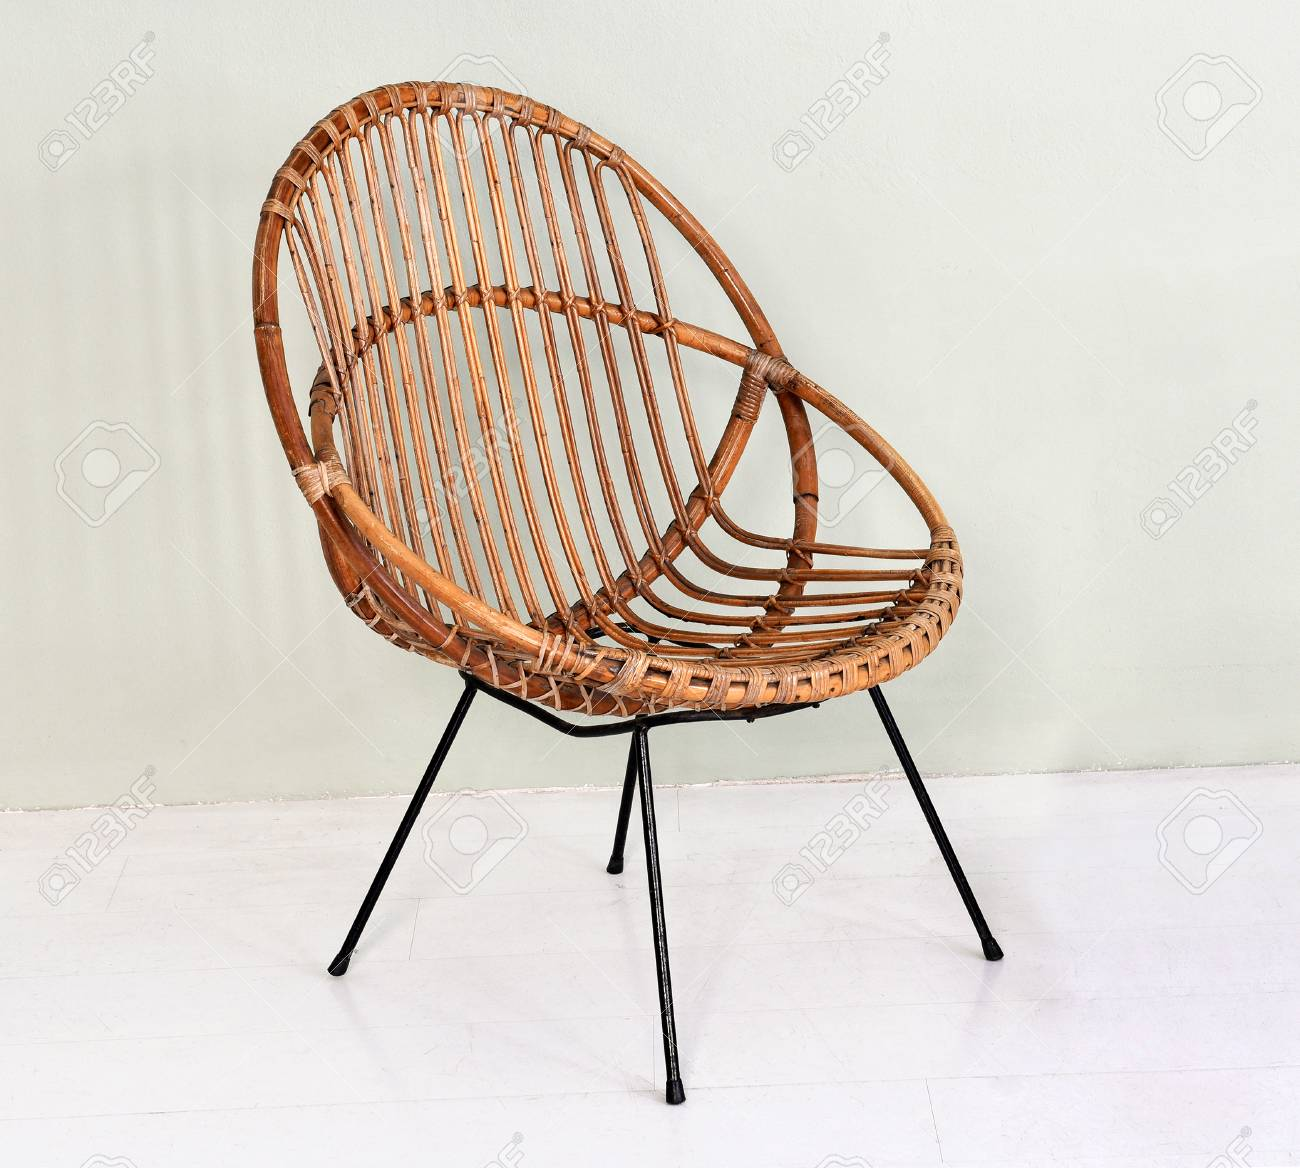 Comfortable Round Wicker Chair With Metal Legs Made With Intertwined